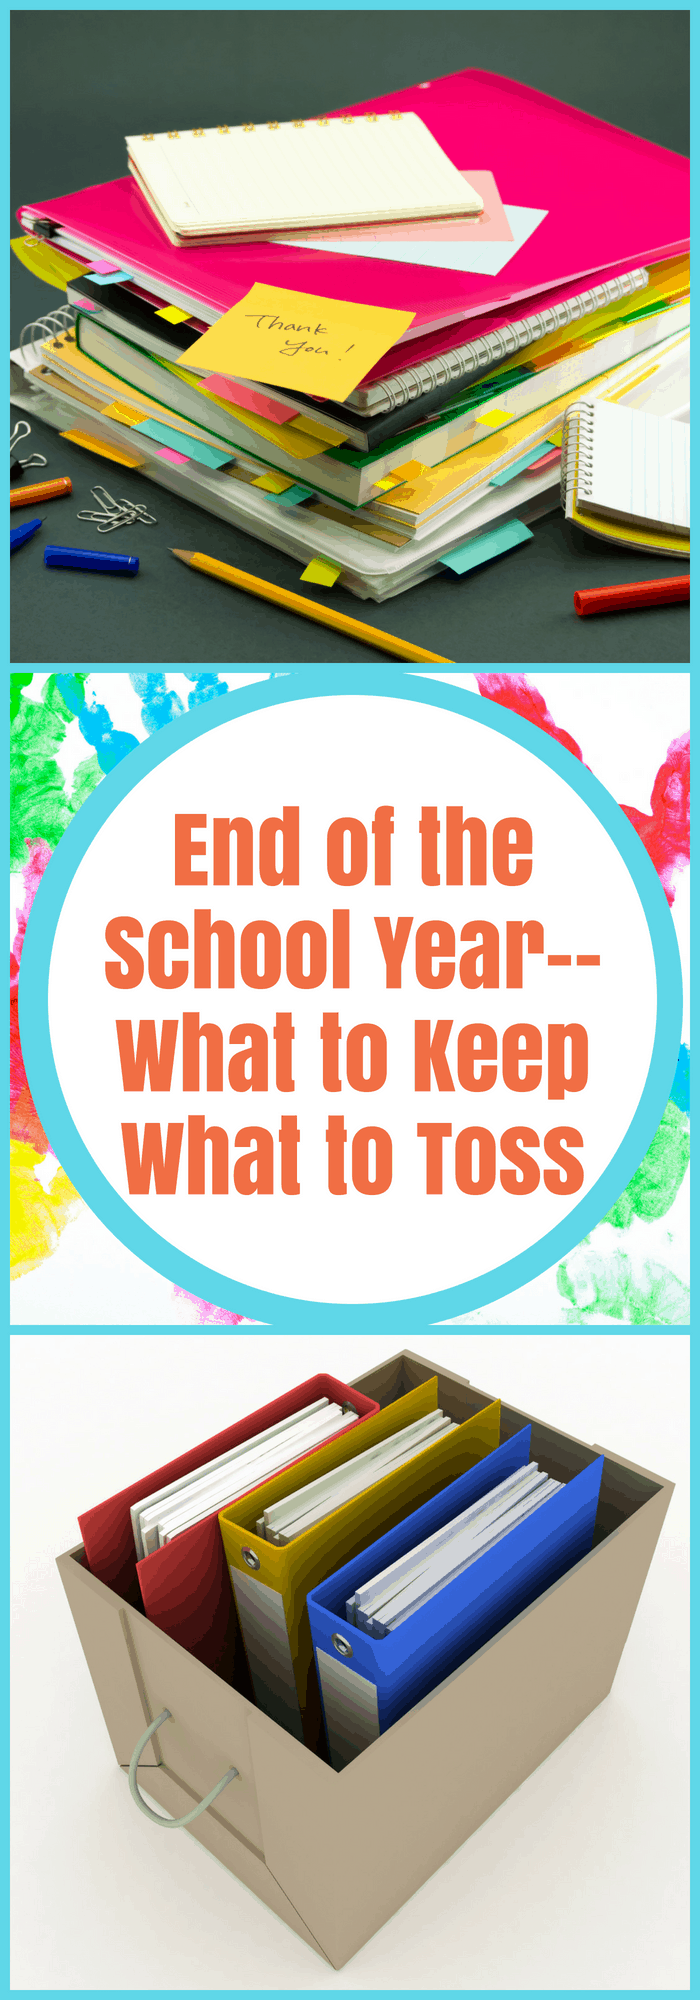 Parenting--End of the School Year--What to Keep, What to Toss--The Organized Mom